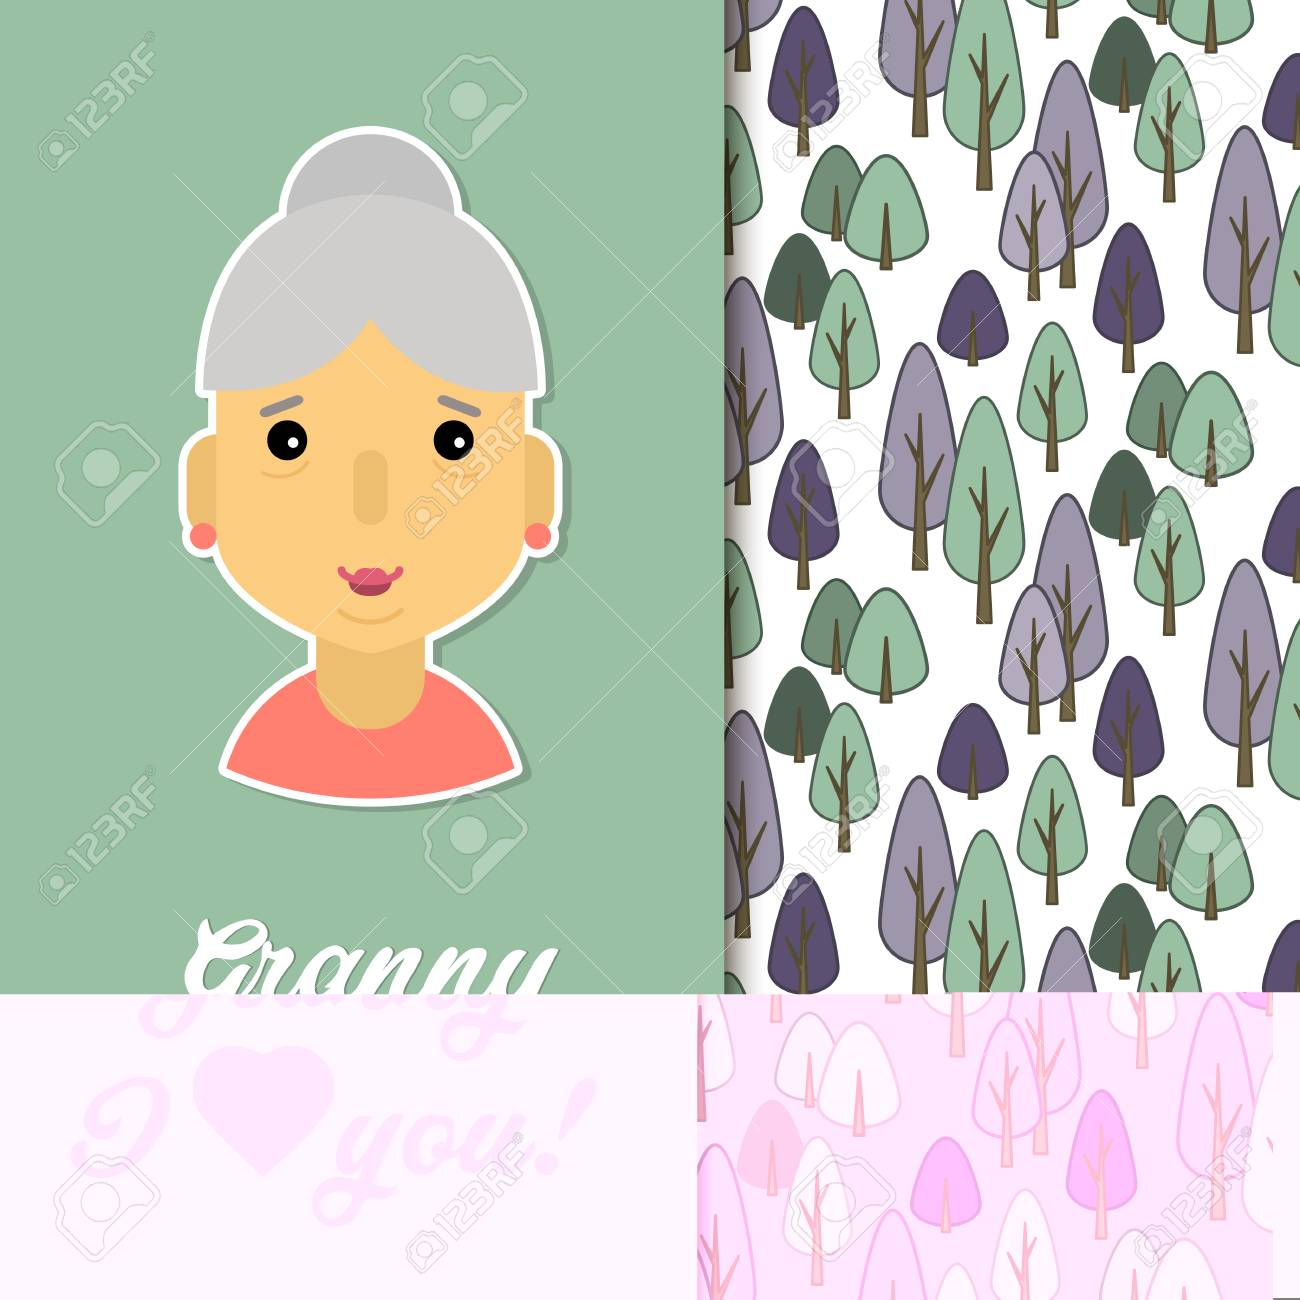 Happy Day Grandparents Card For Your Greetings Stock Vector